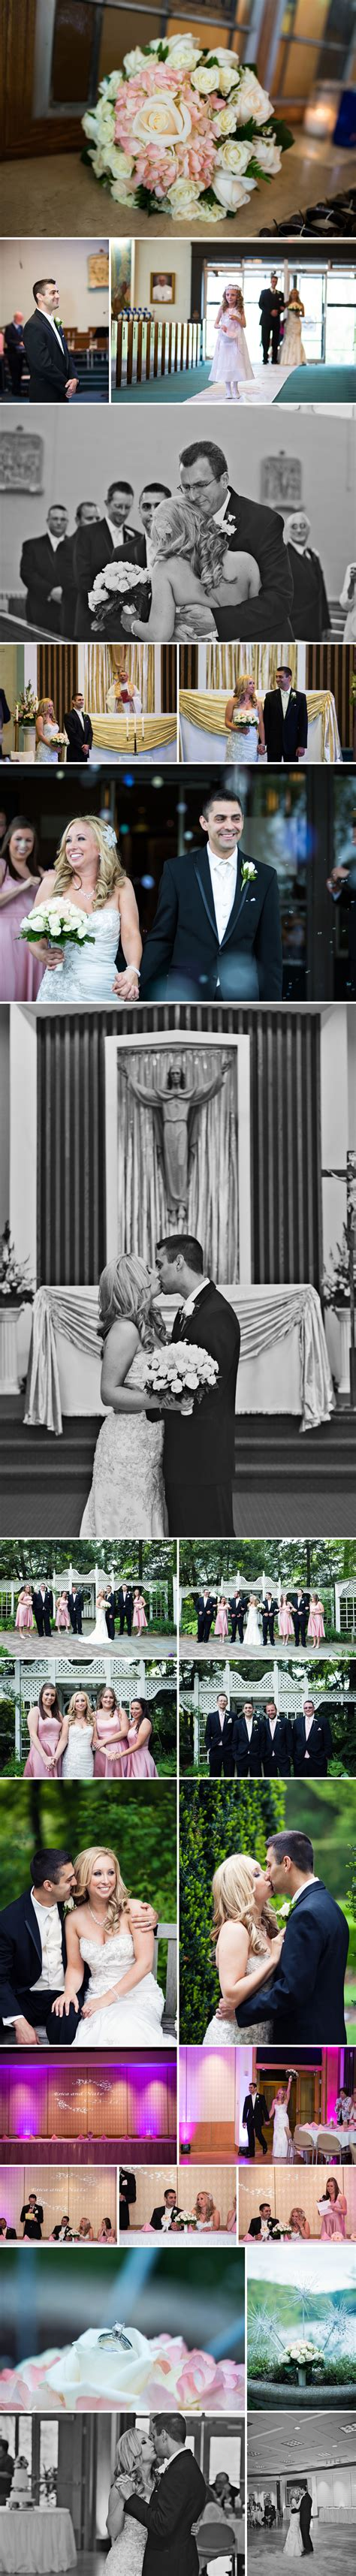 Wedding Cake Youngstown Ohio by Erica Nate Youngstown Oh Wedding Photographer